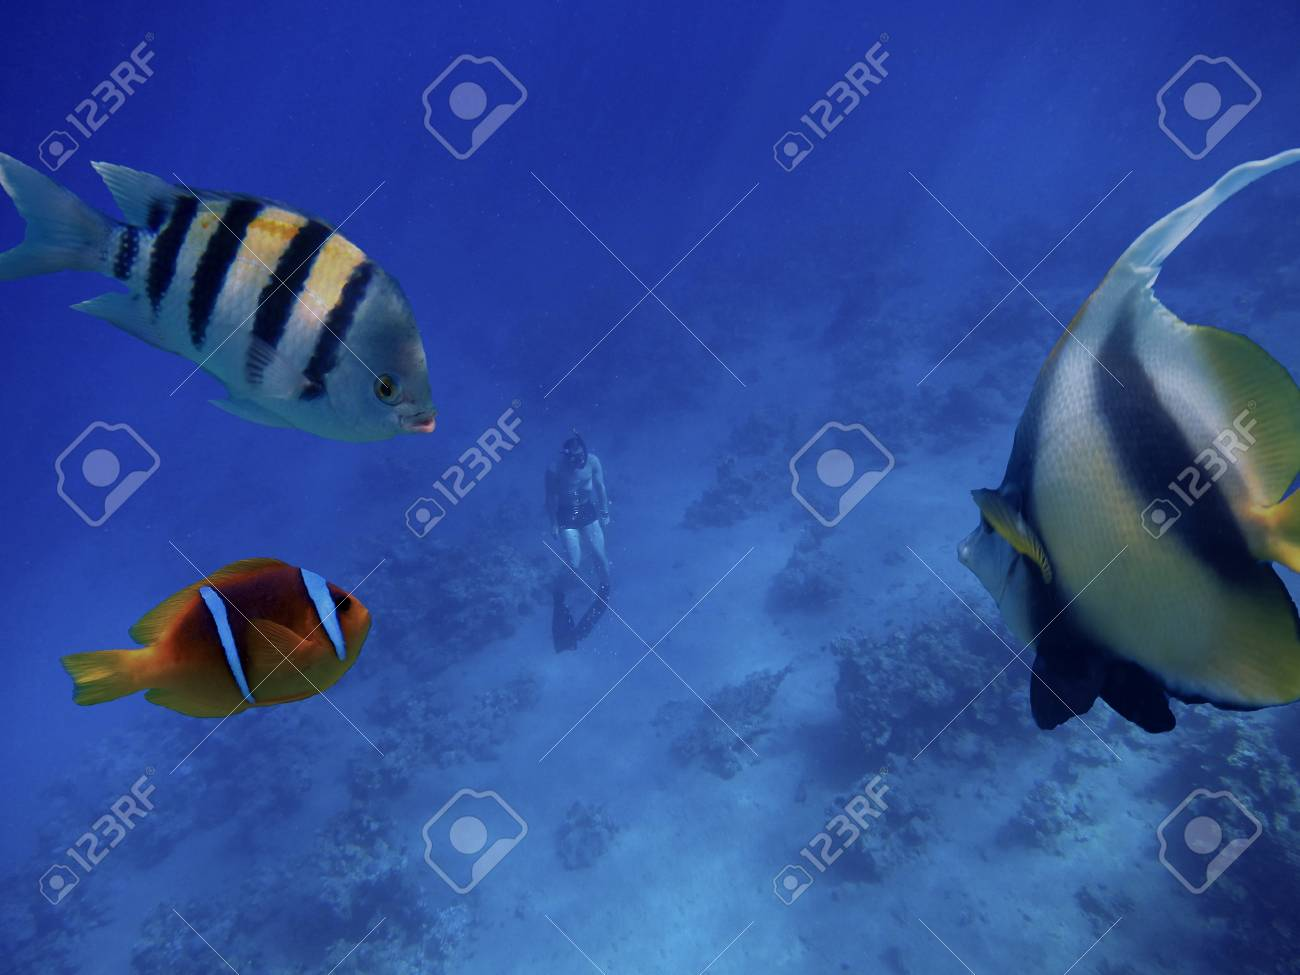 free diving or apnea diving emerged from the depths of the ocean